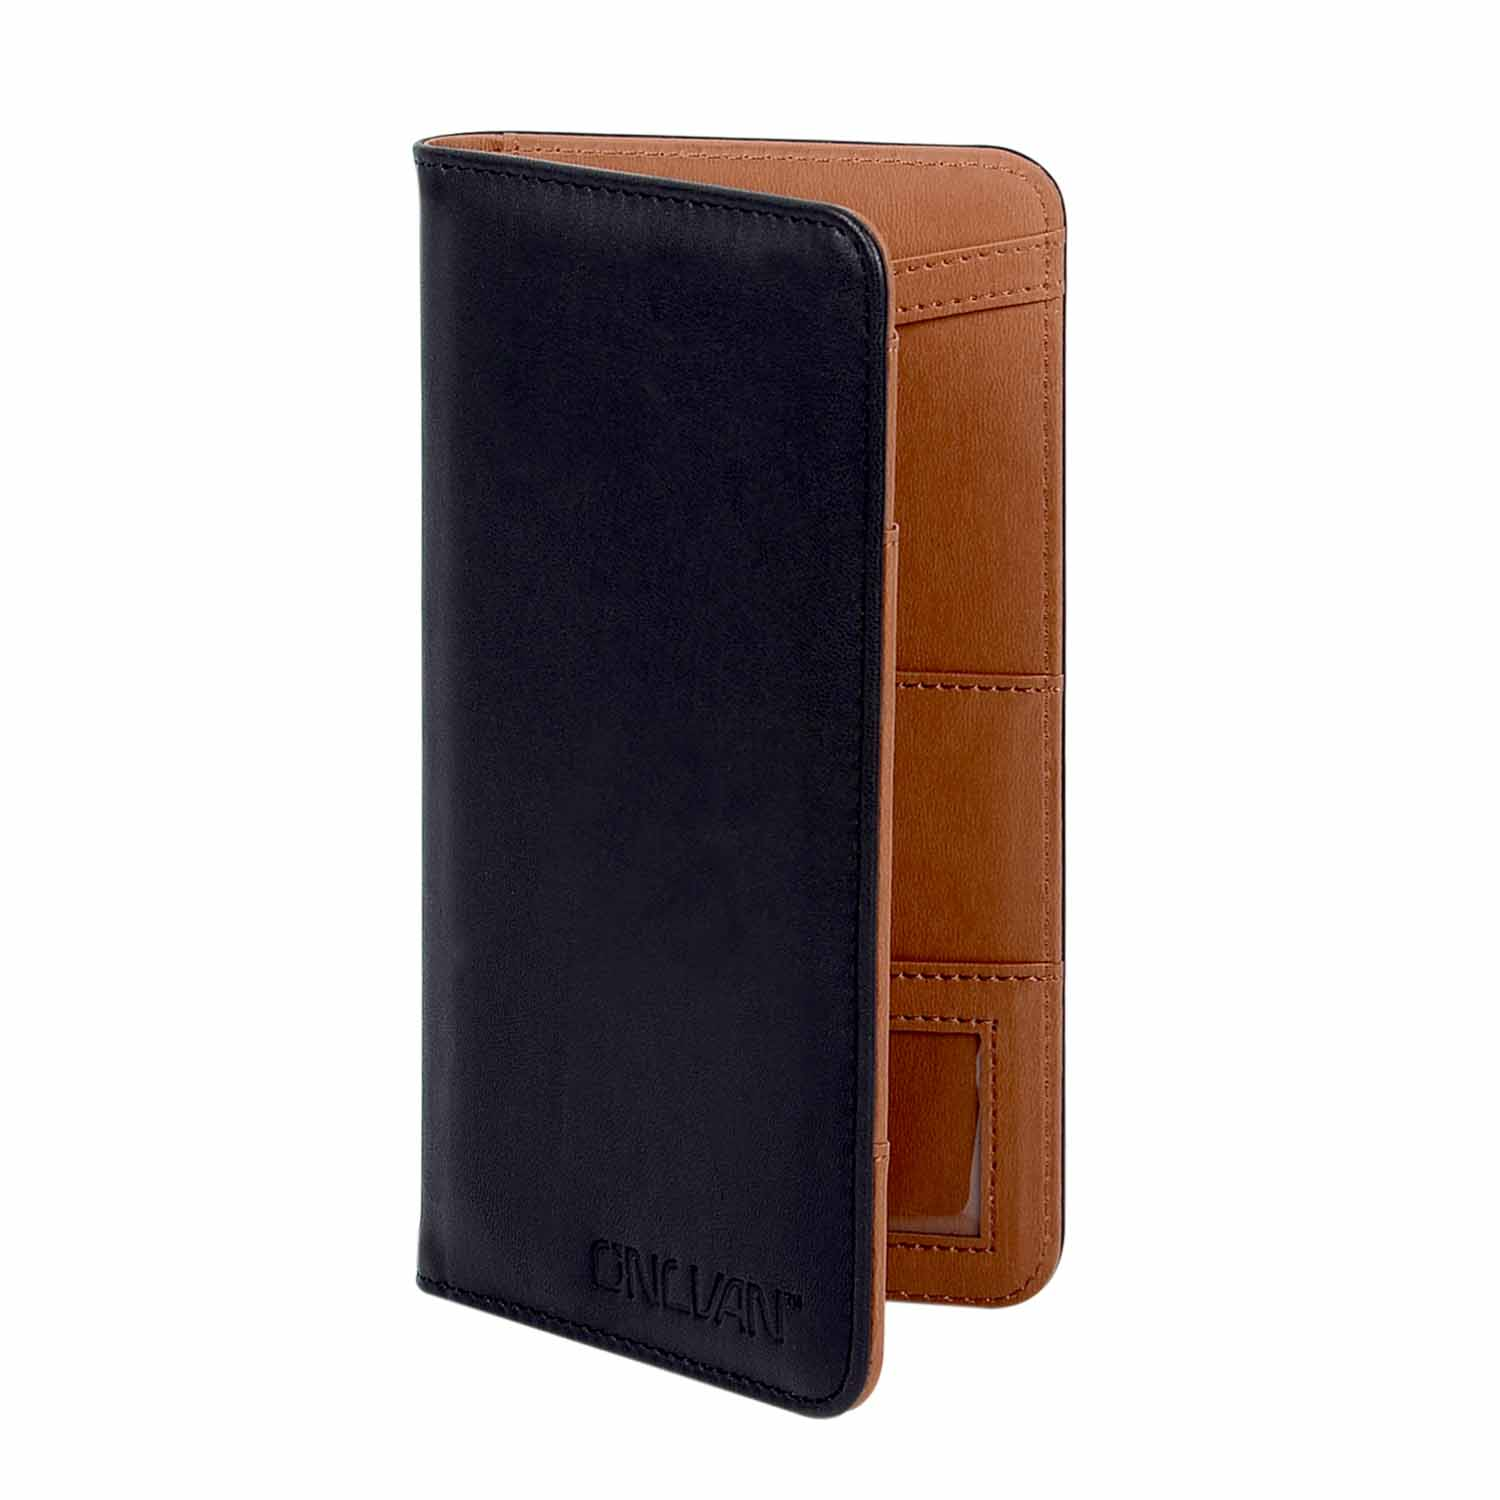 Customized PU Leather Rfid Blocking Travel Passport Holder passport ticket wallet with ID